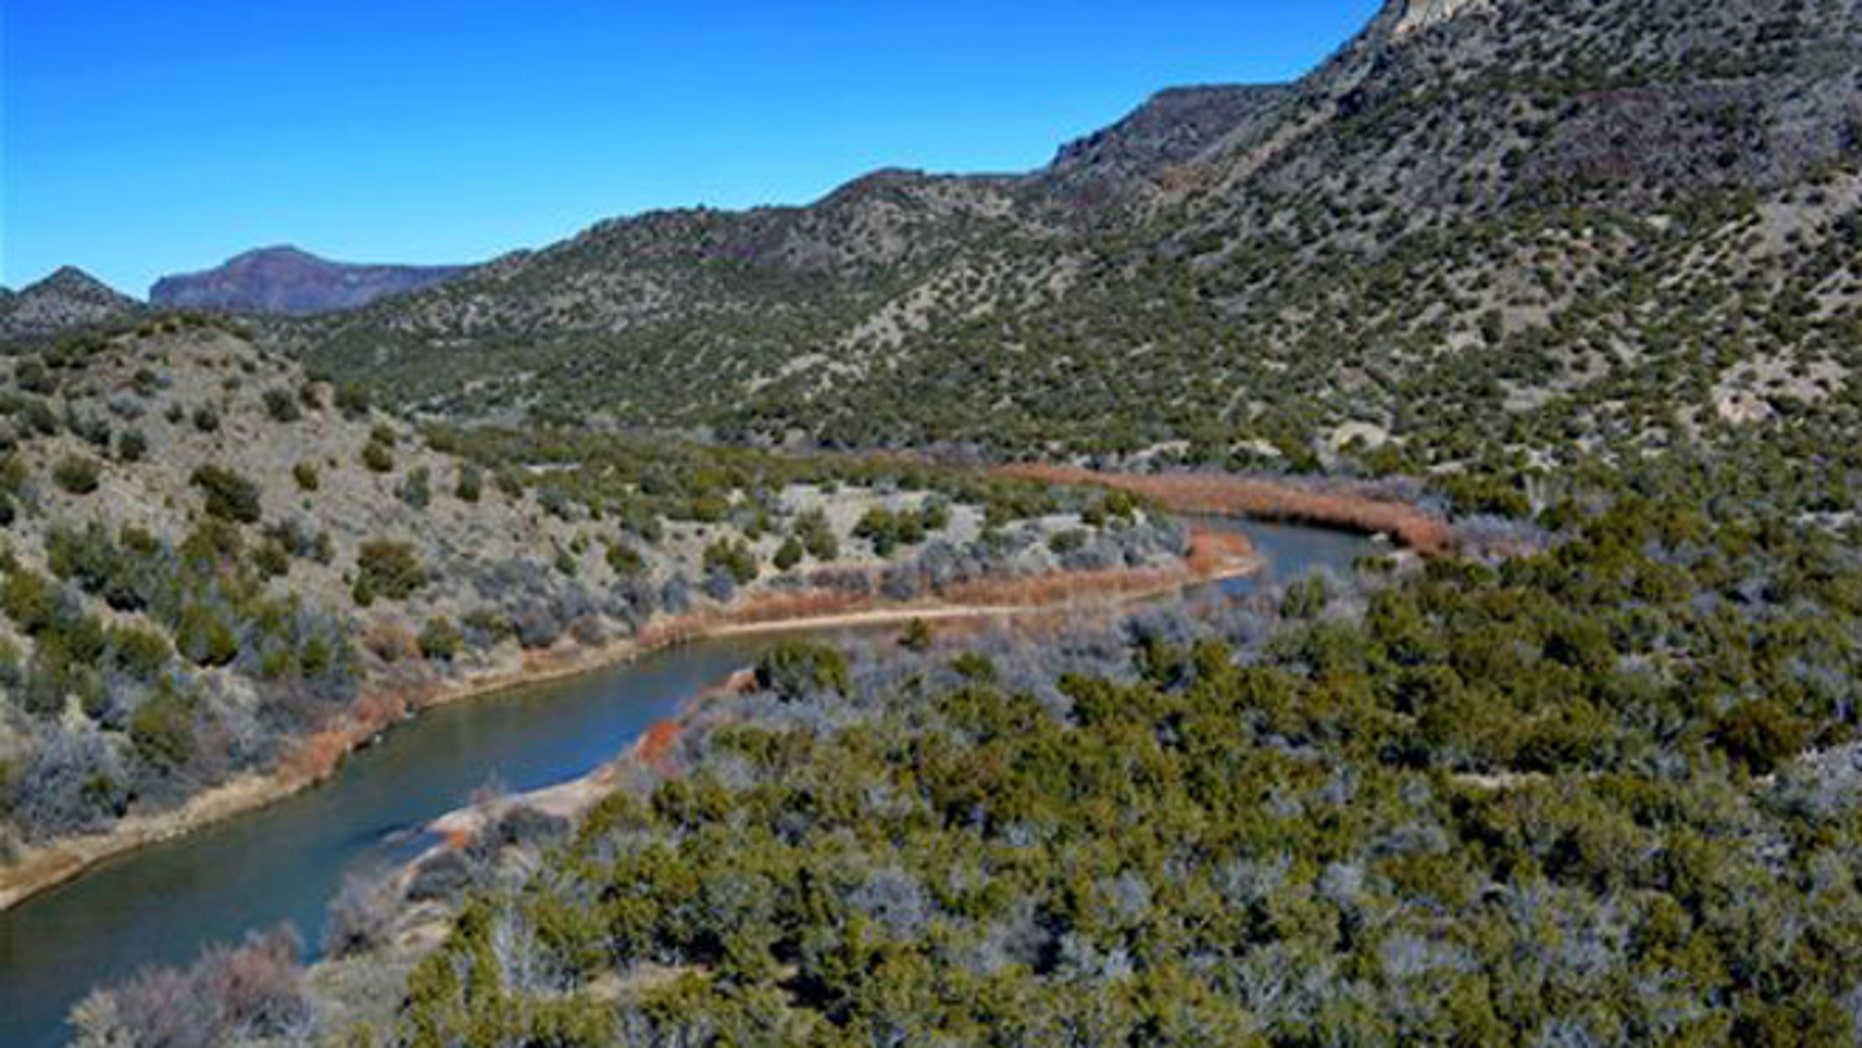 This Tuesday, Jan. 26, 2015 photo shows an area in New Mexico that was searched by air for missing treasure hunter Randy Bilyeu. (Cynthia Meachum via AP)